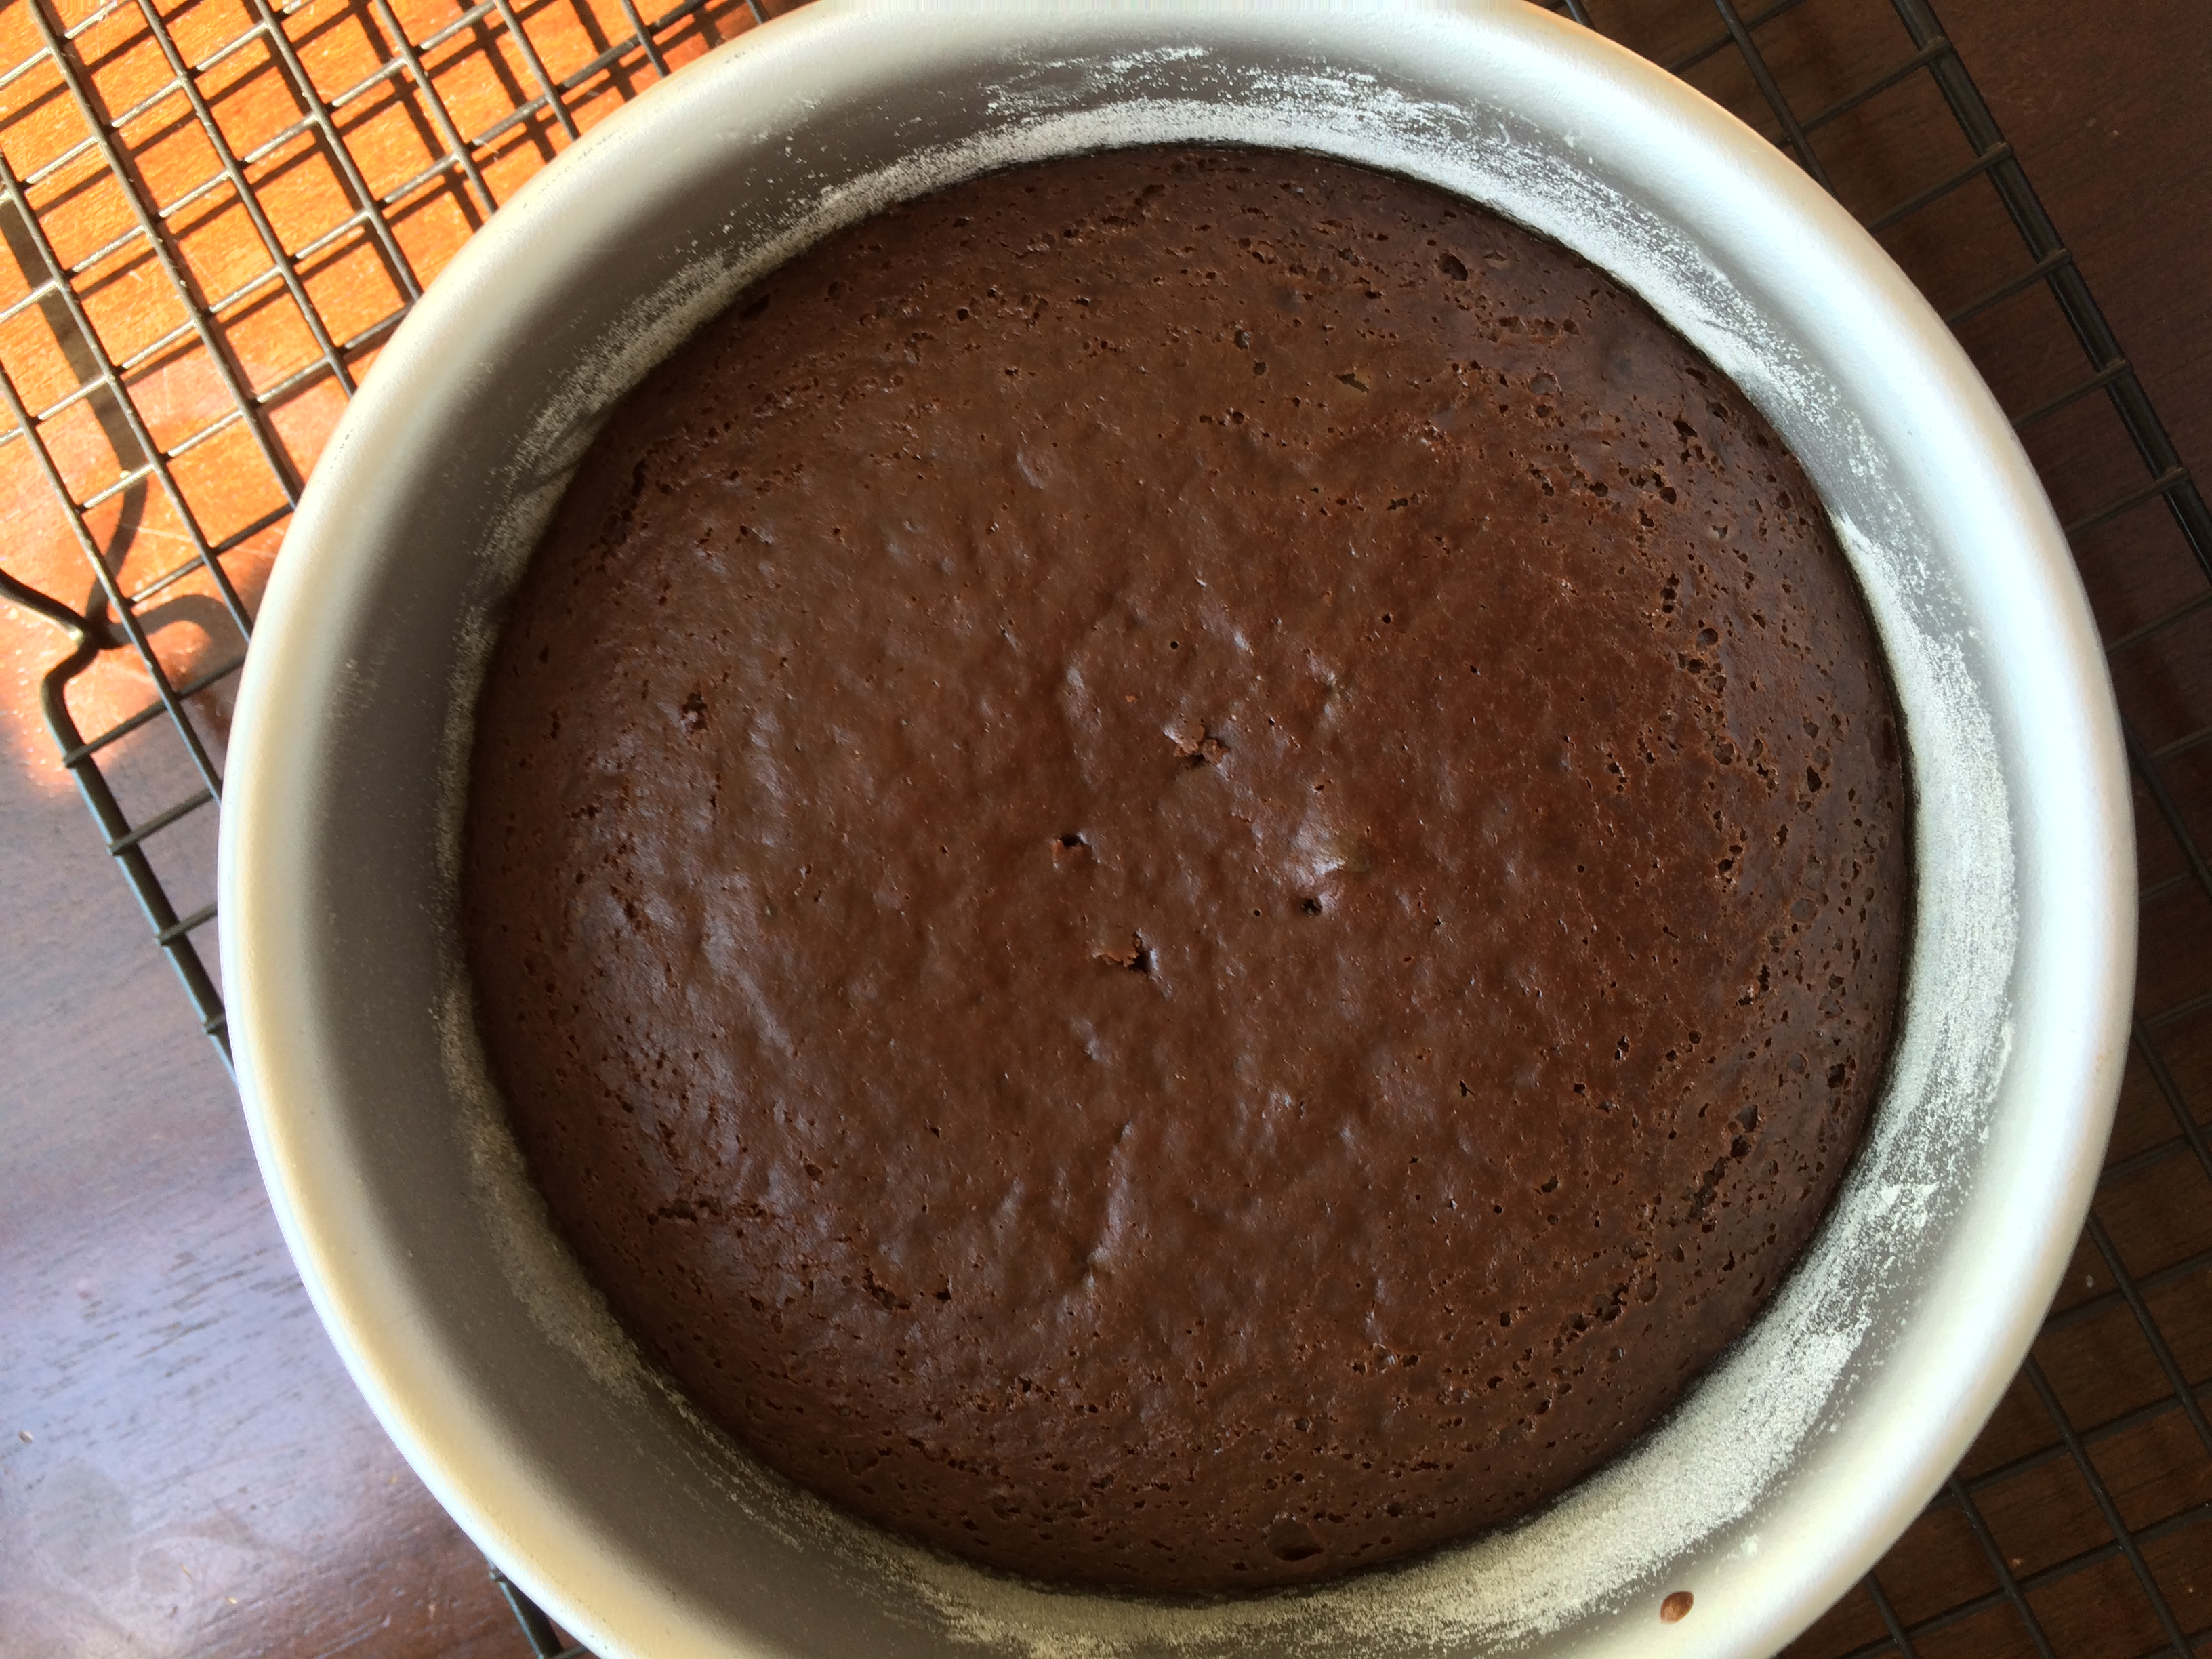 How to make chocolate cake without oven at home